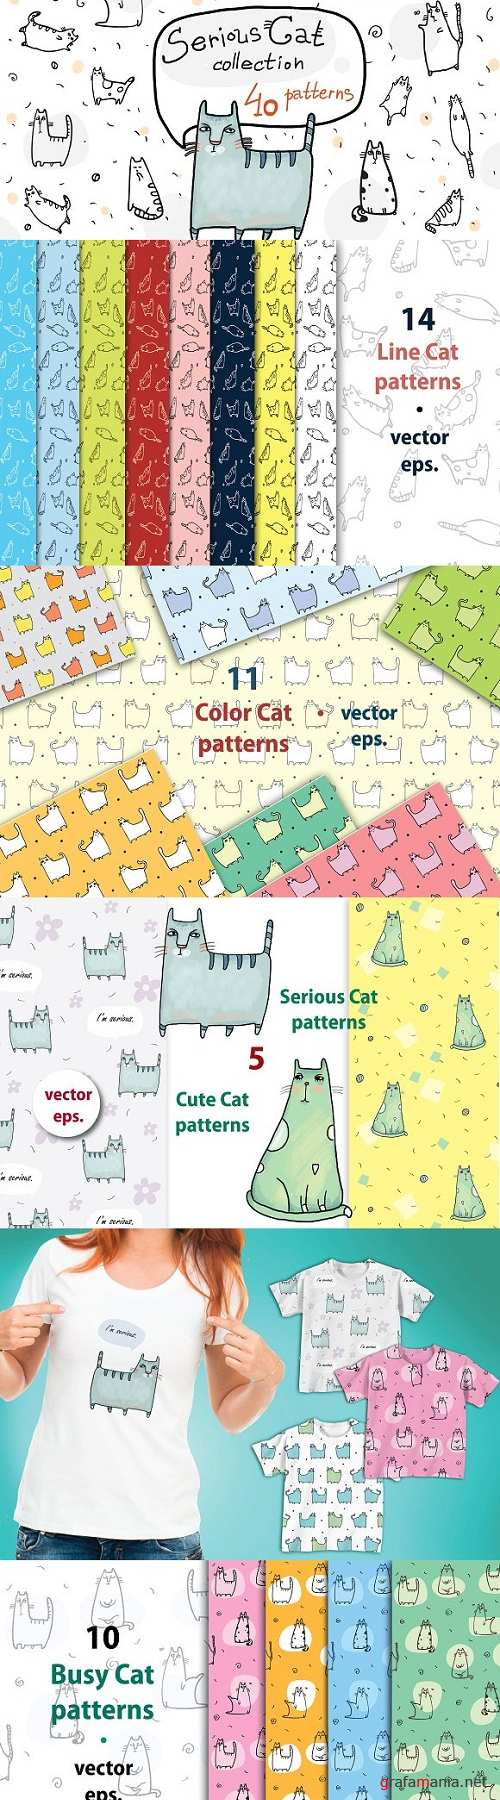 Serious Cat Collection - 40 patterns - 1574978